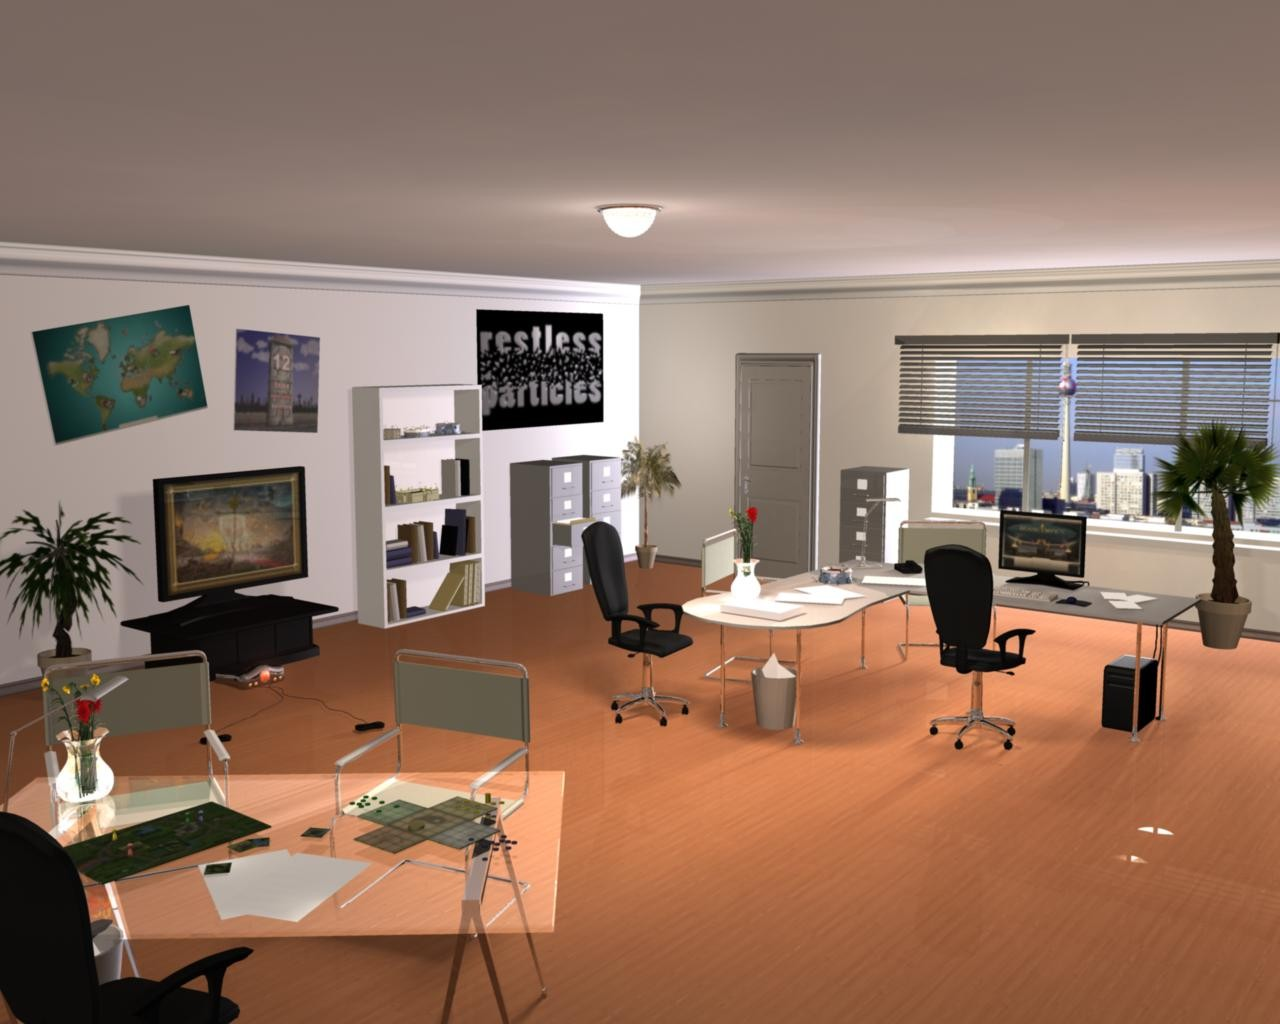 My first interior rendering ever